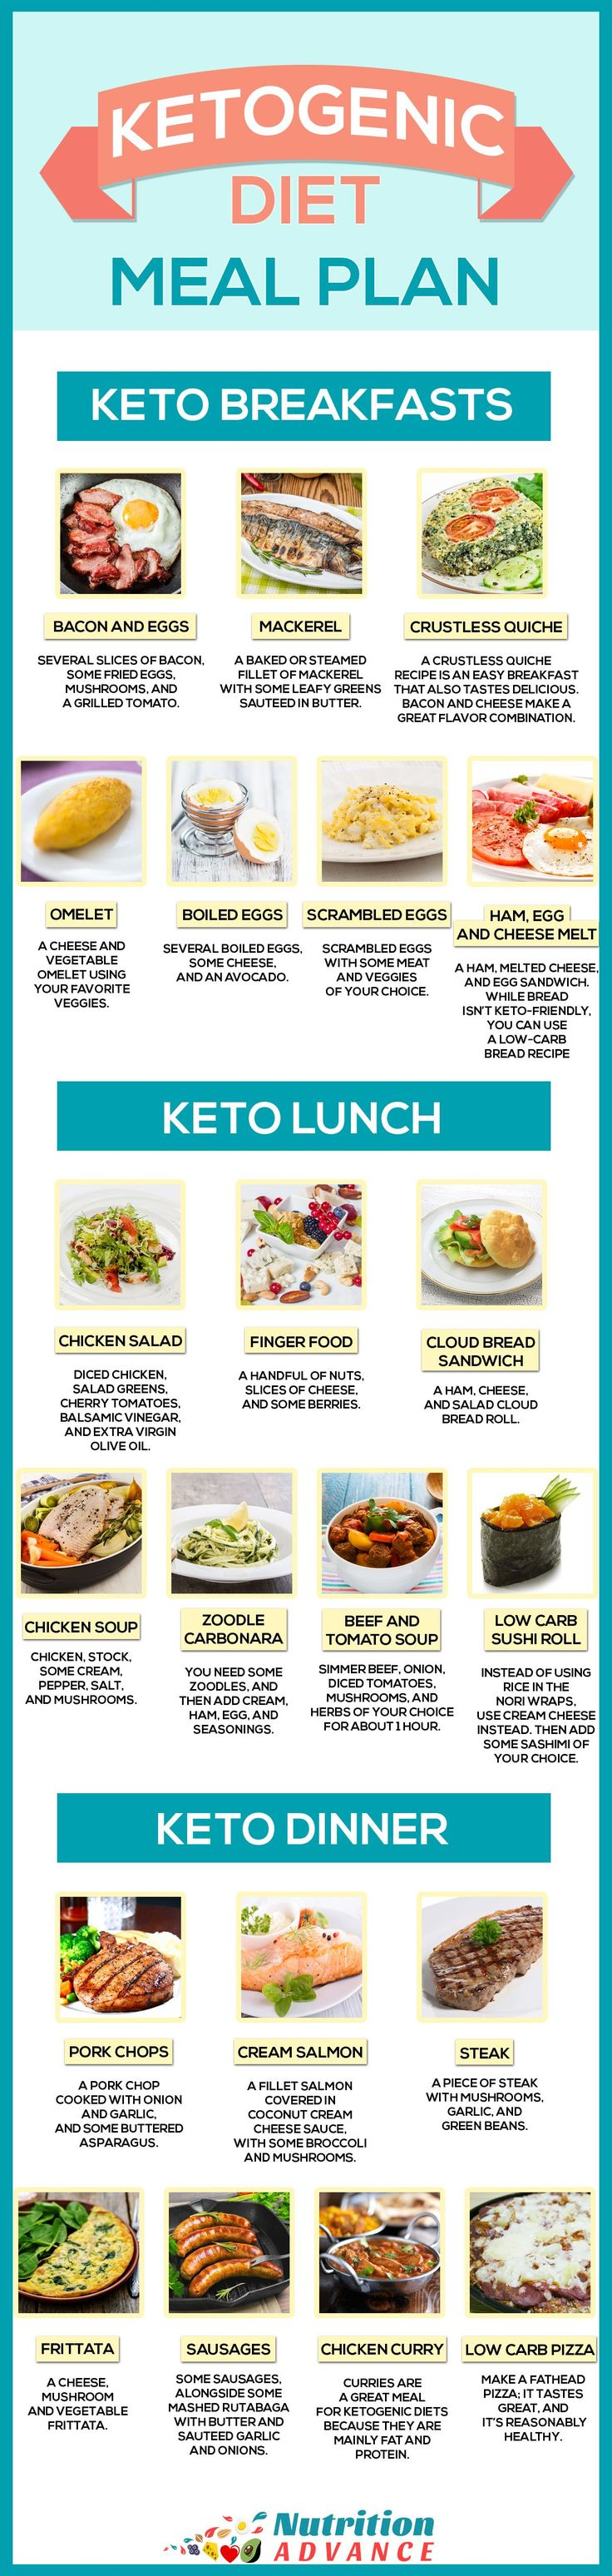 Ketogenic Diet Meal Plan For 7 Days - This infographic shows some ideas for a keto breakfast, lunch, and dinner. All meals are very low in carbs but high in essential vitamins and minerals, and other health-protective nutrients. The ketogenic diet is one of the healthiest ways of eating when correctly formulated, and this is based on the meal plan available in the guide to ketogenic diets at http://nutritionadvance.com/ketogenic-diet-ultimate-guide-to-keto There's a simple reason why most…